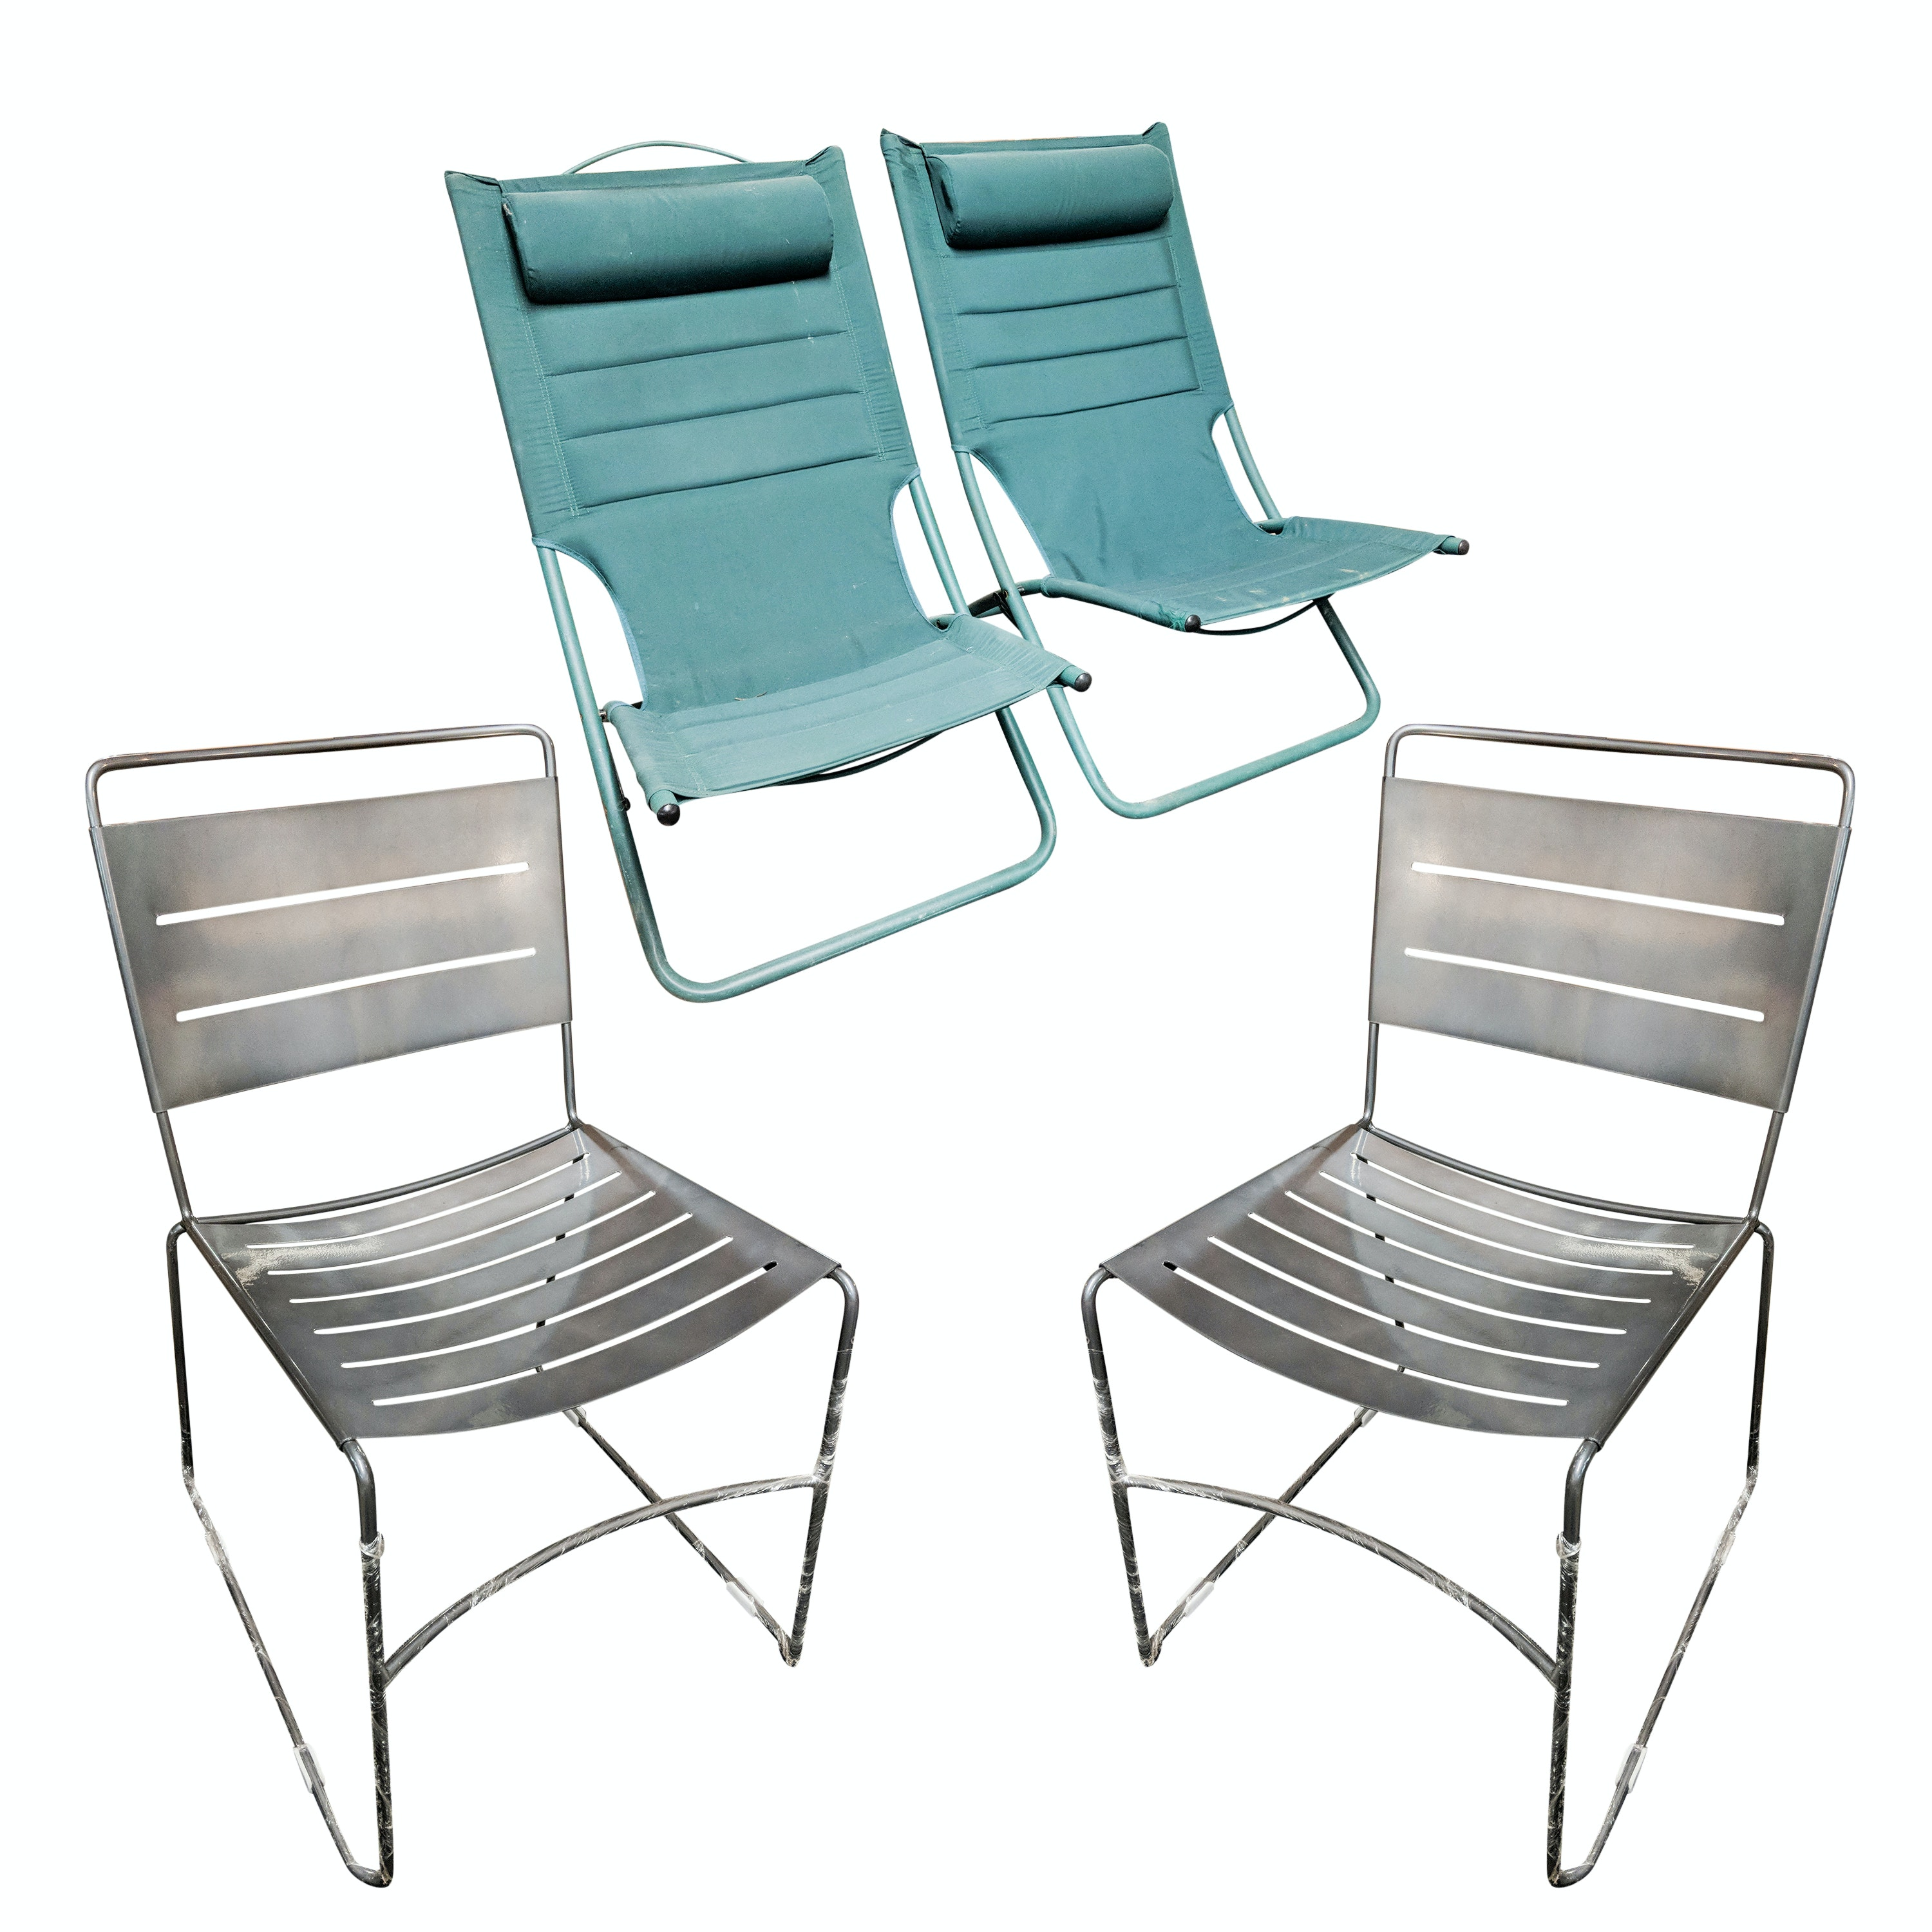 Four Metal Patio Stacking Chairs and Two Fabric Lounge Chairs